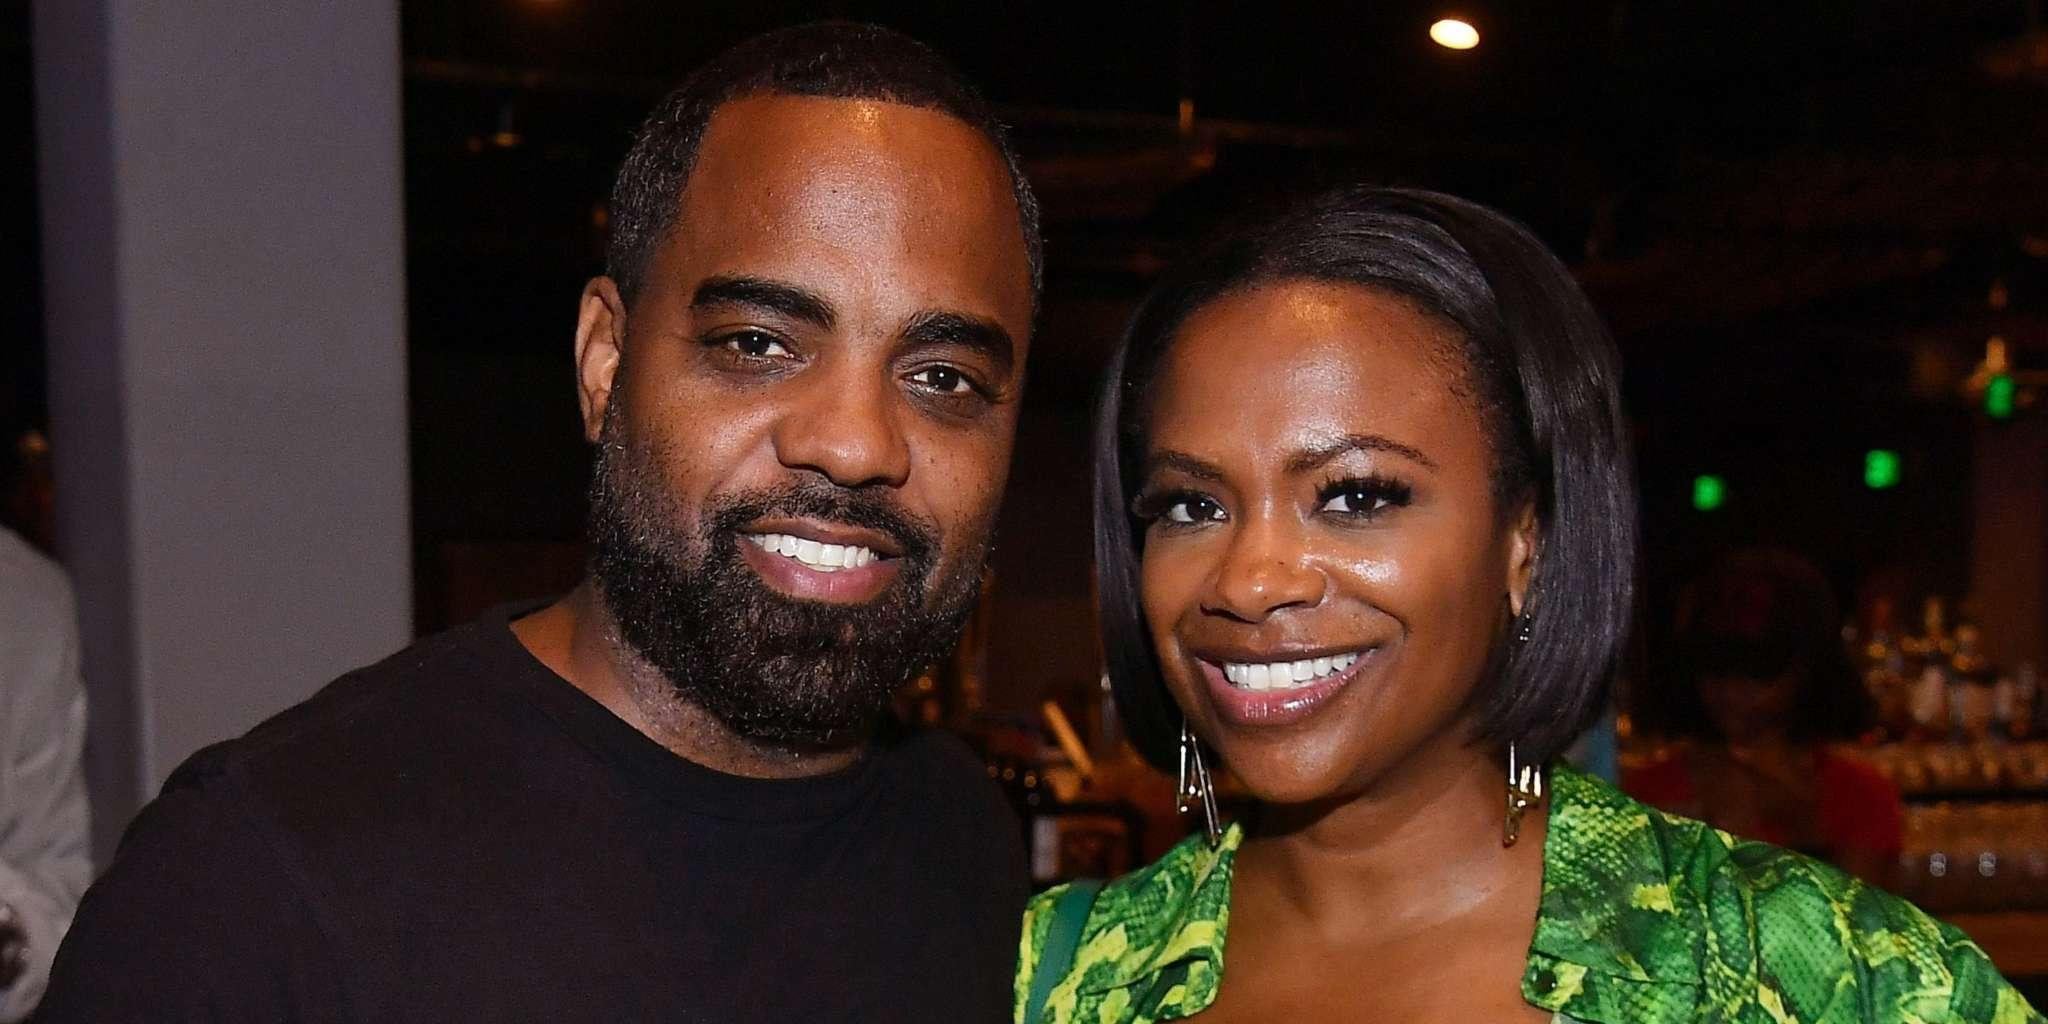 Kandi Burruss Wishes A Happy Birthday To The Hardest Working Woman She Knows